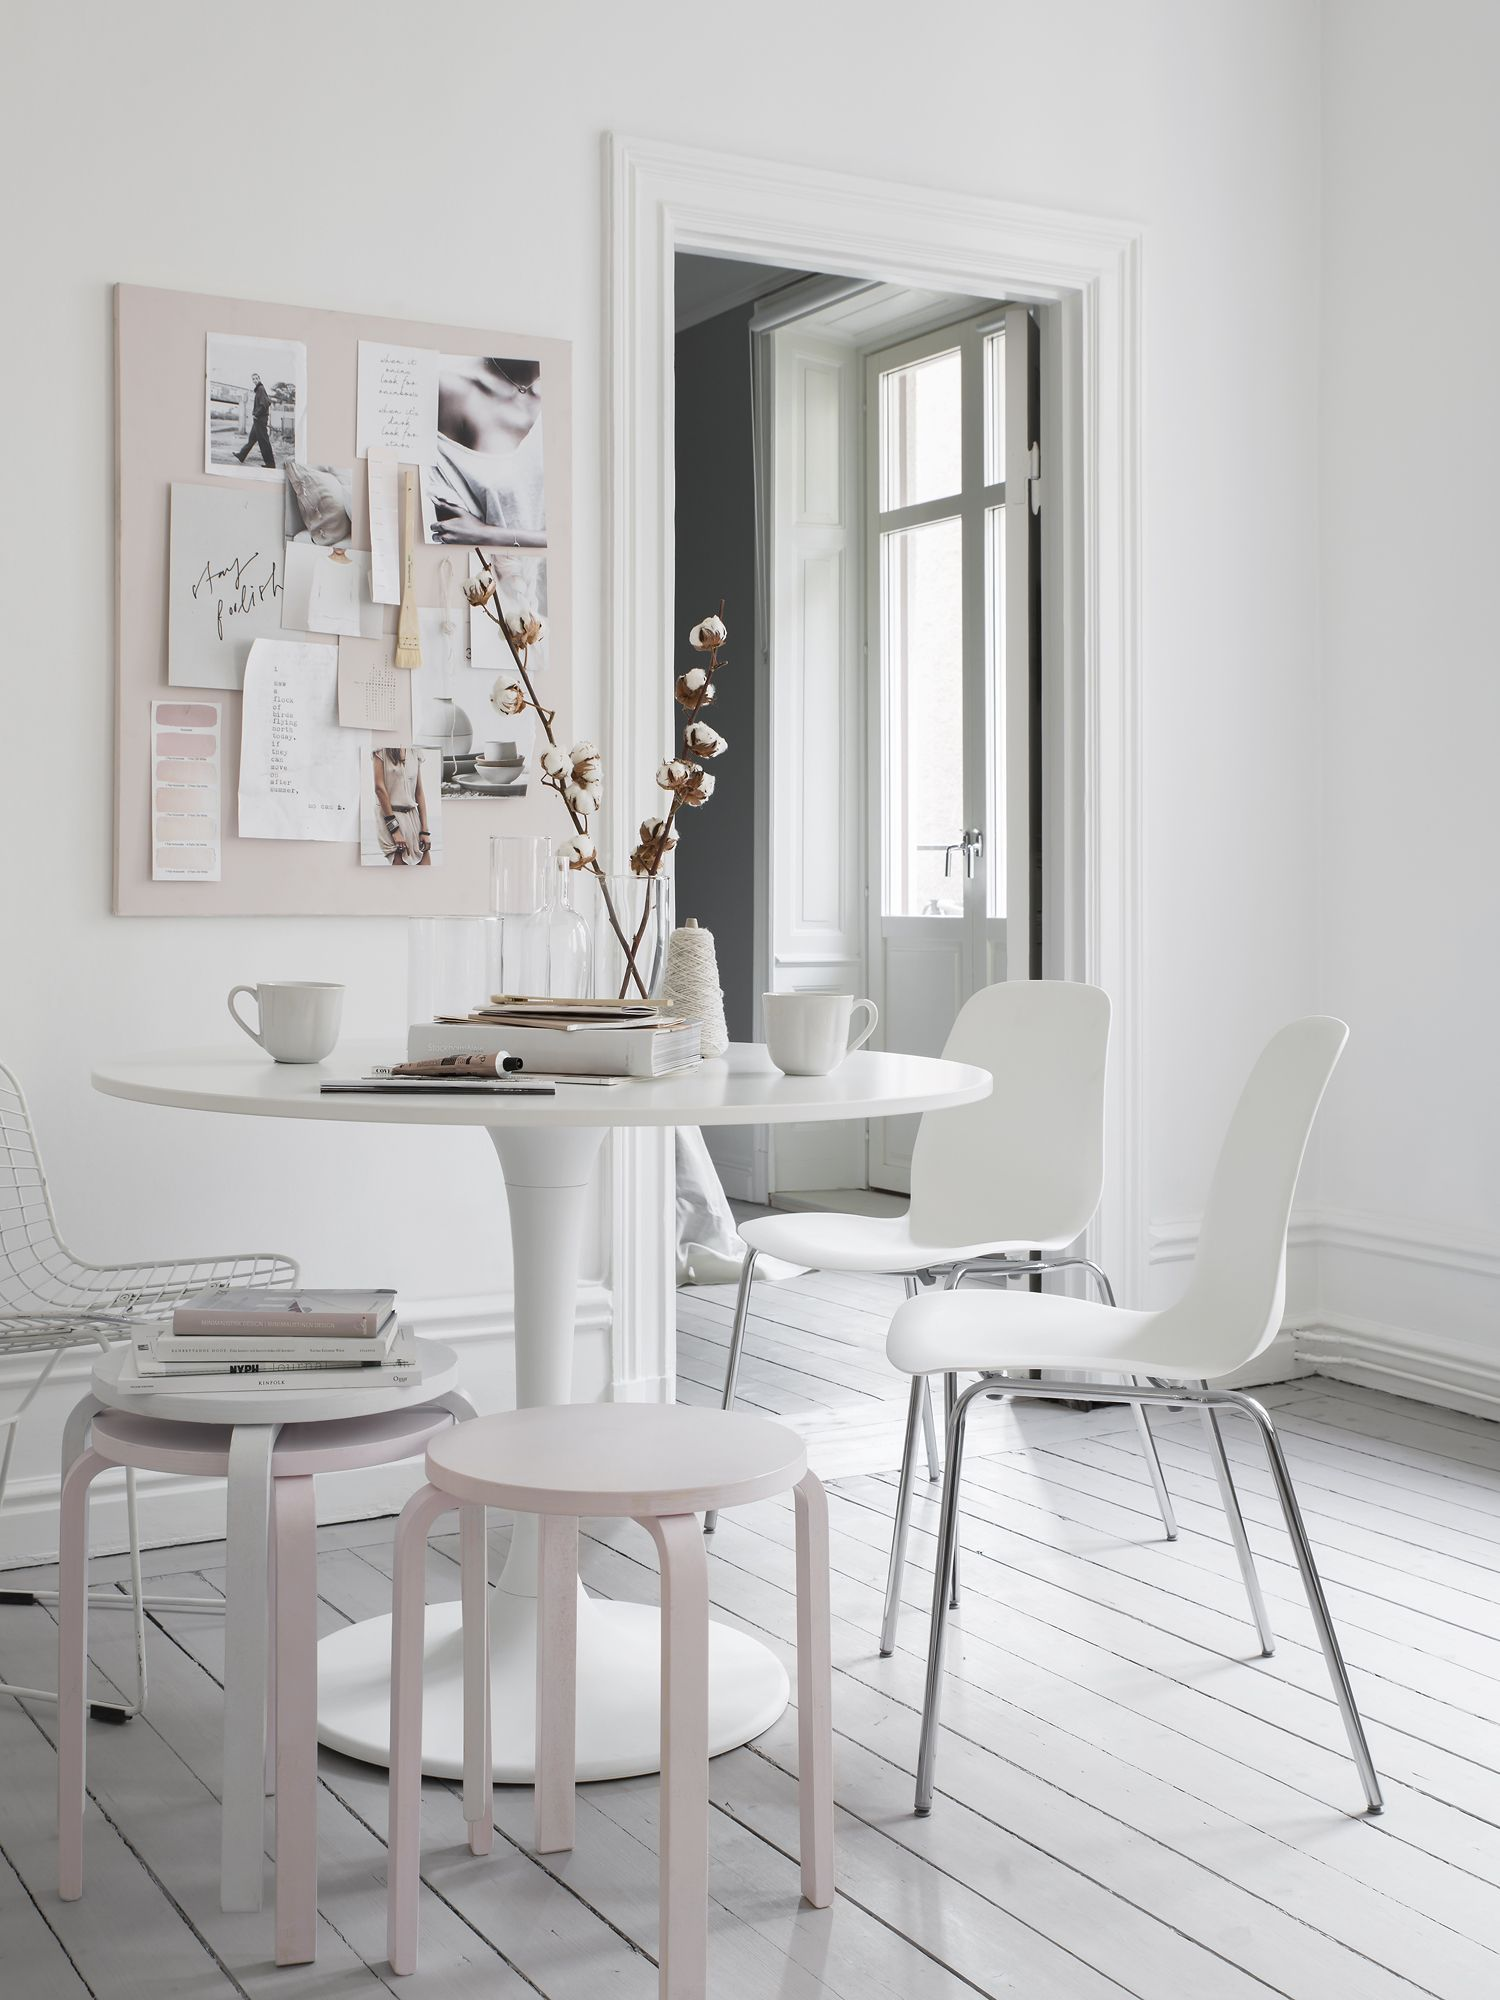 Home interior design dining room dining room rules all the key ingredients f a french dining room